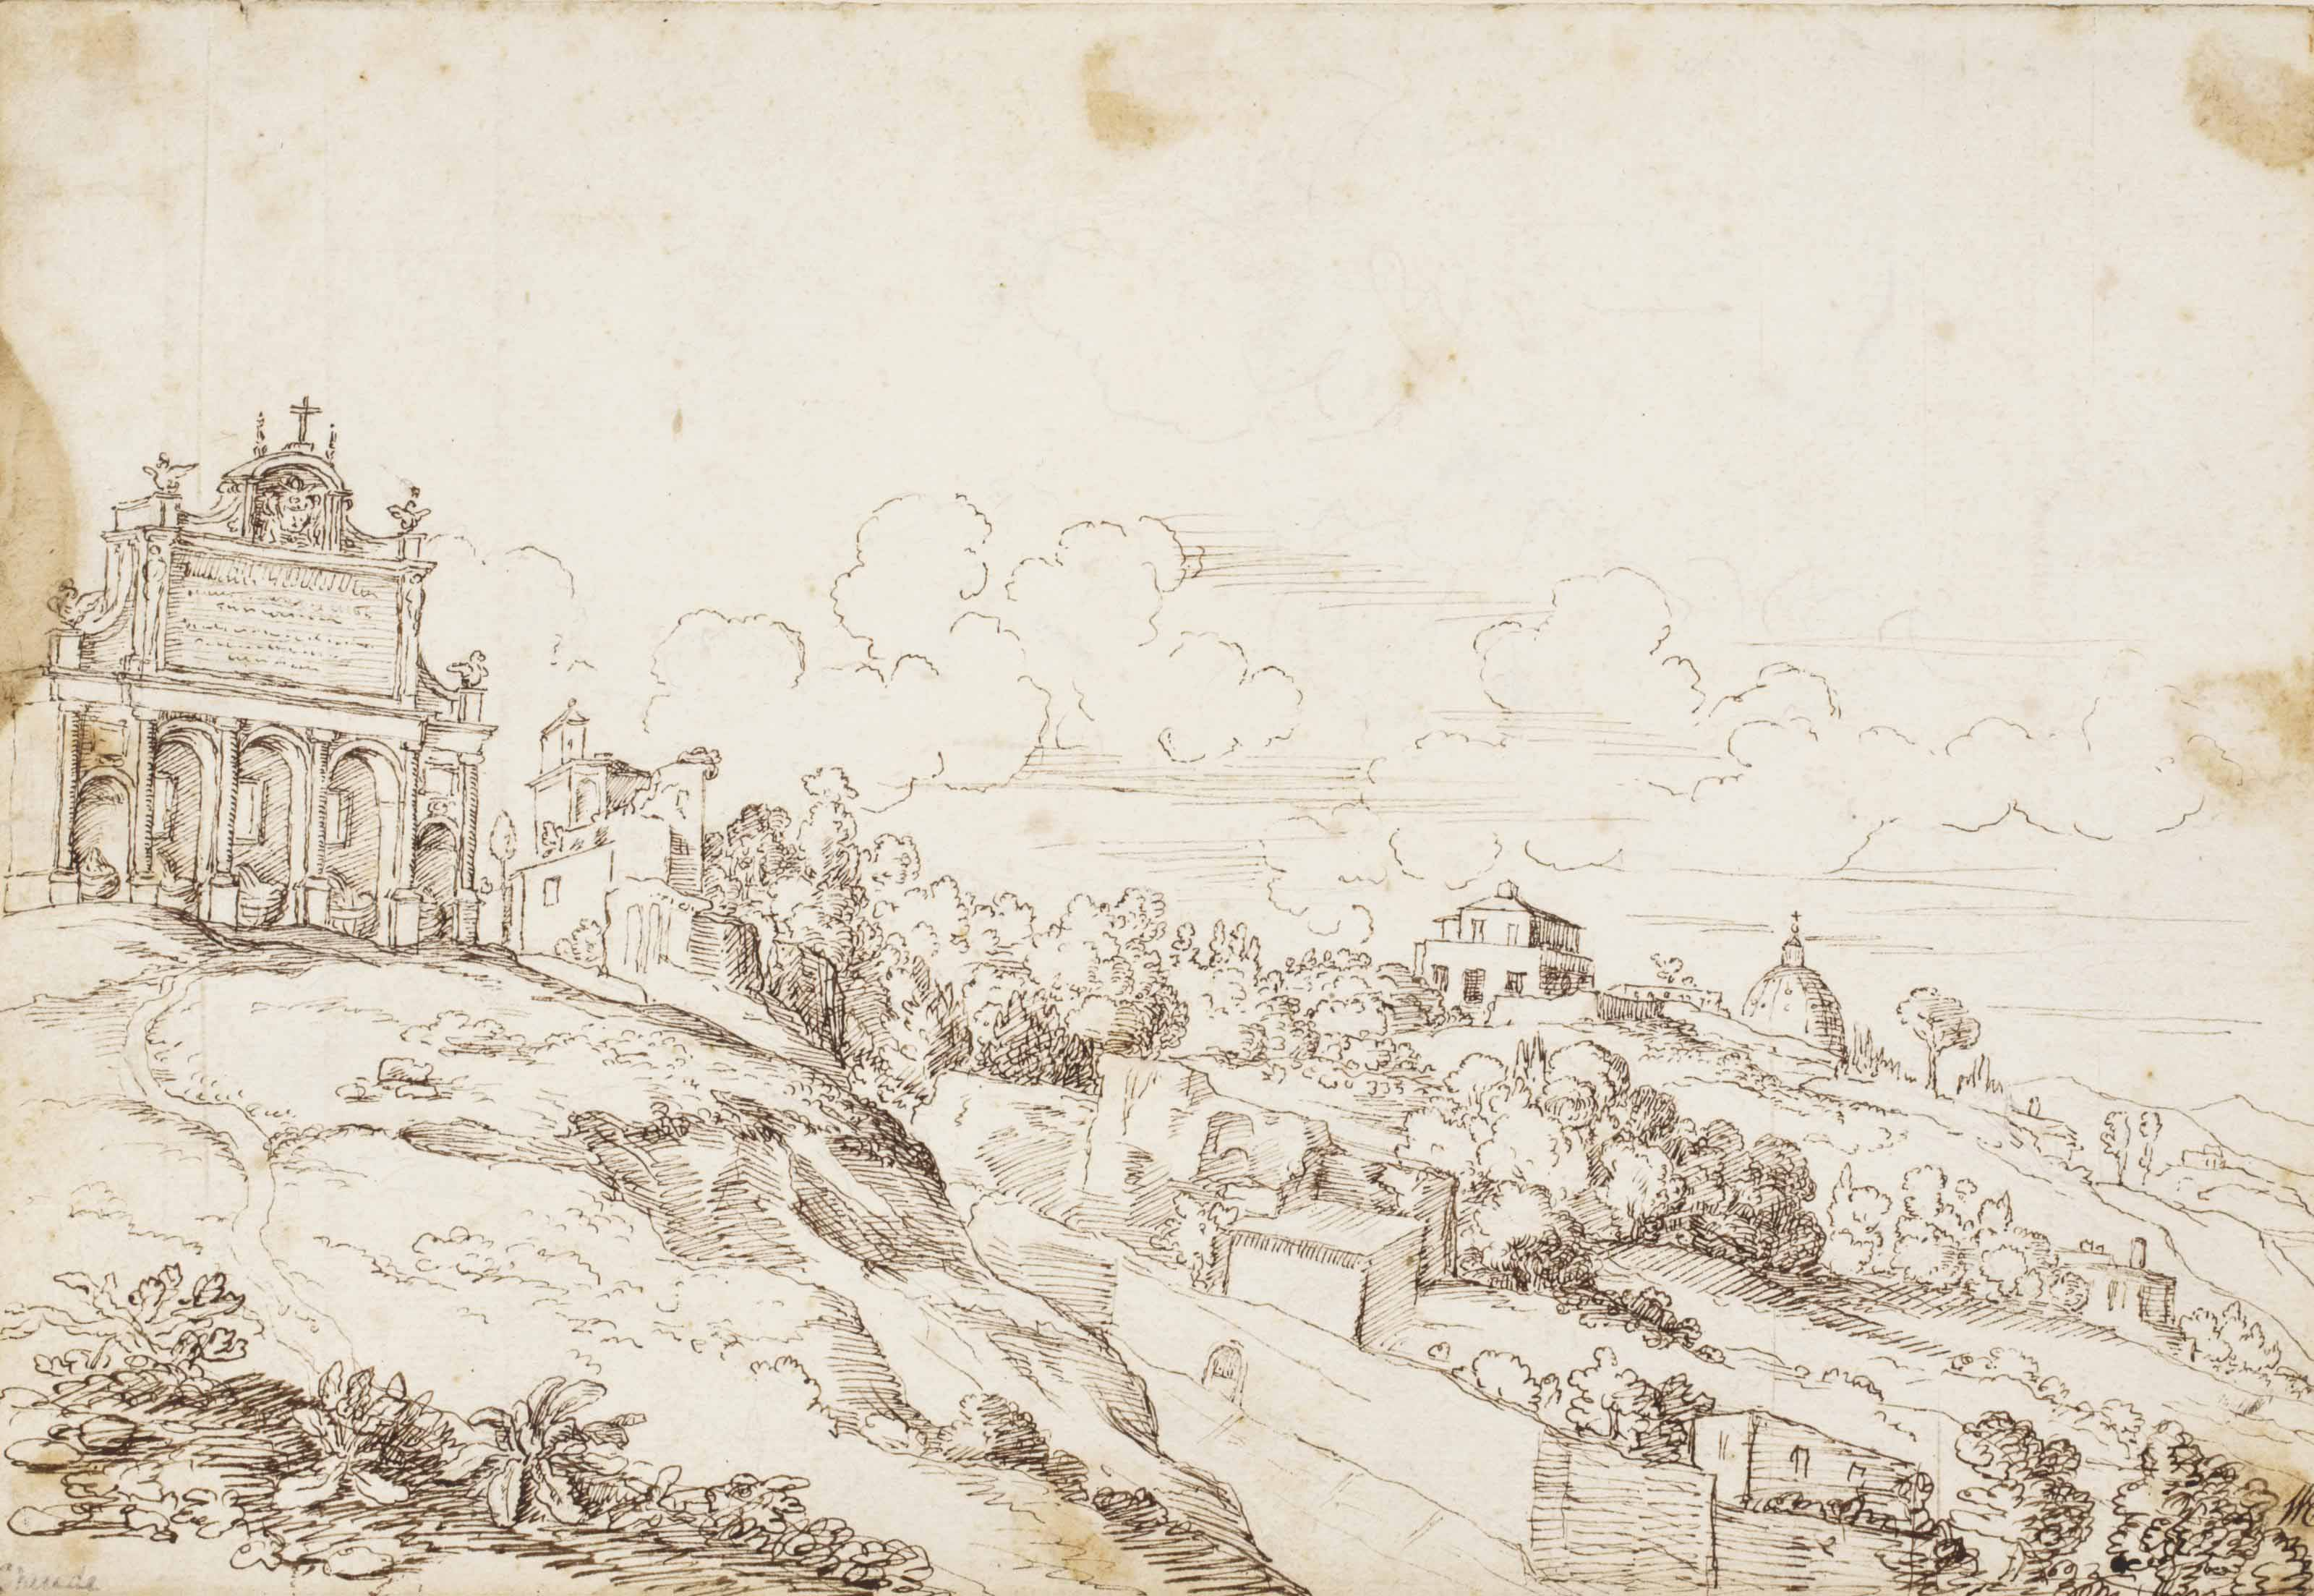 A hilly landscape with the Fontana Paola, Rome